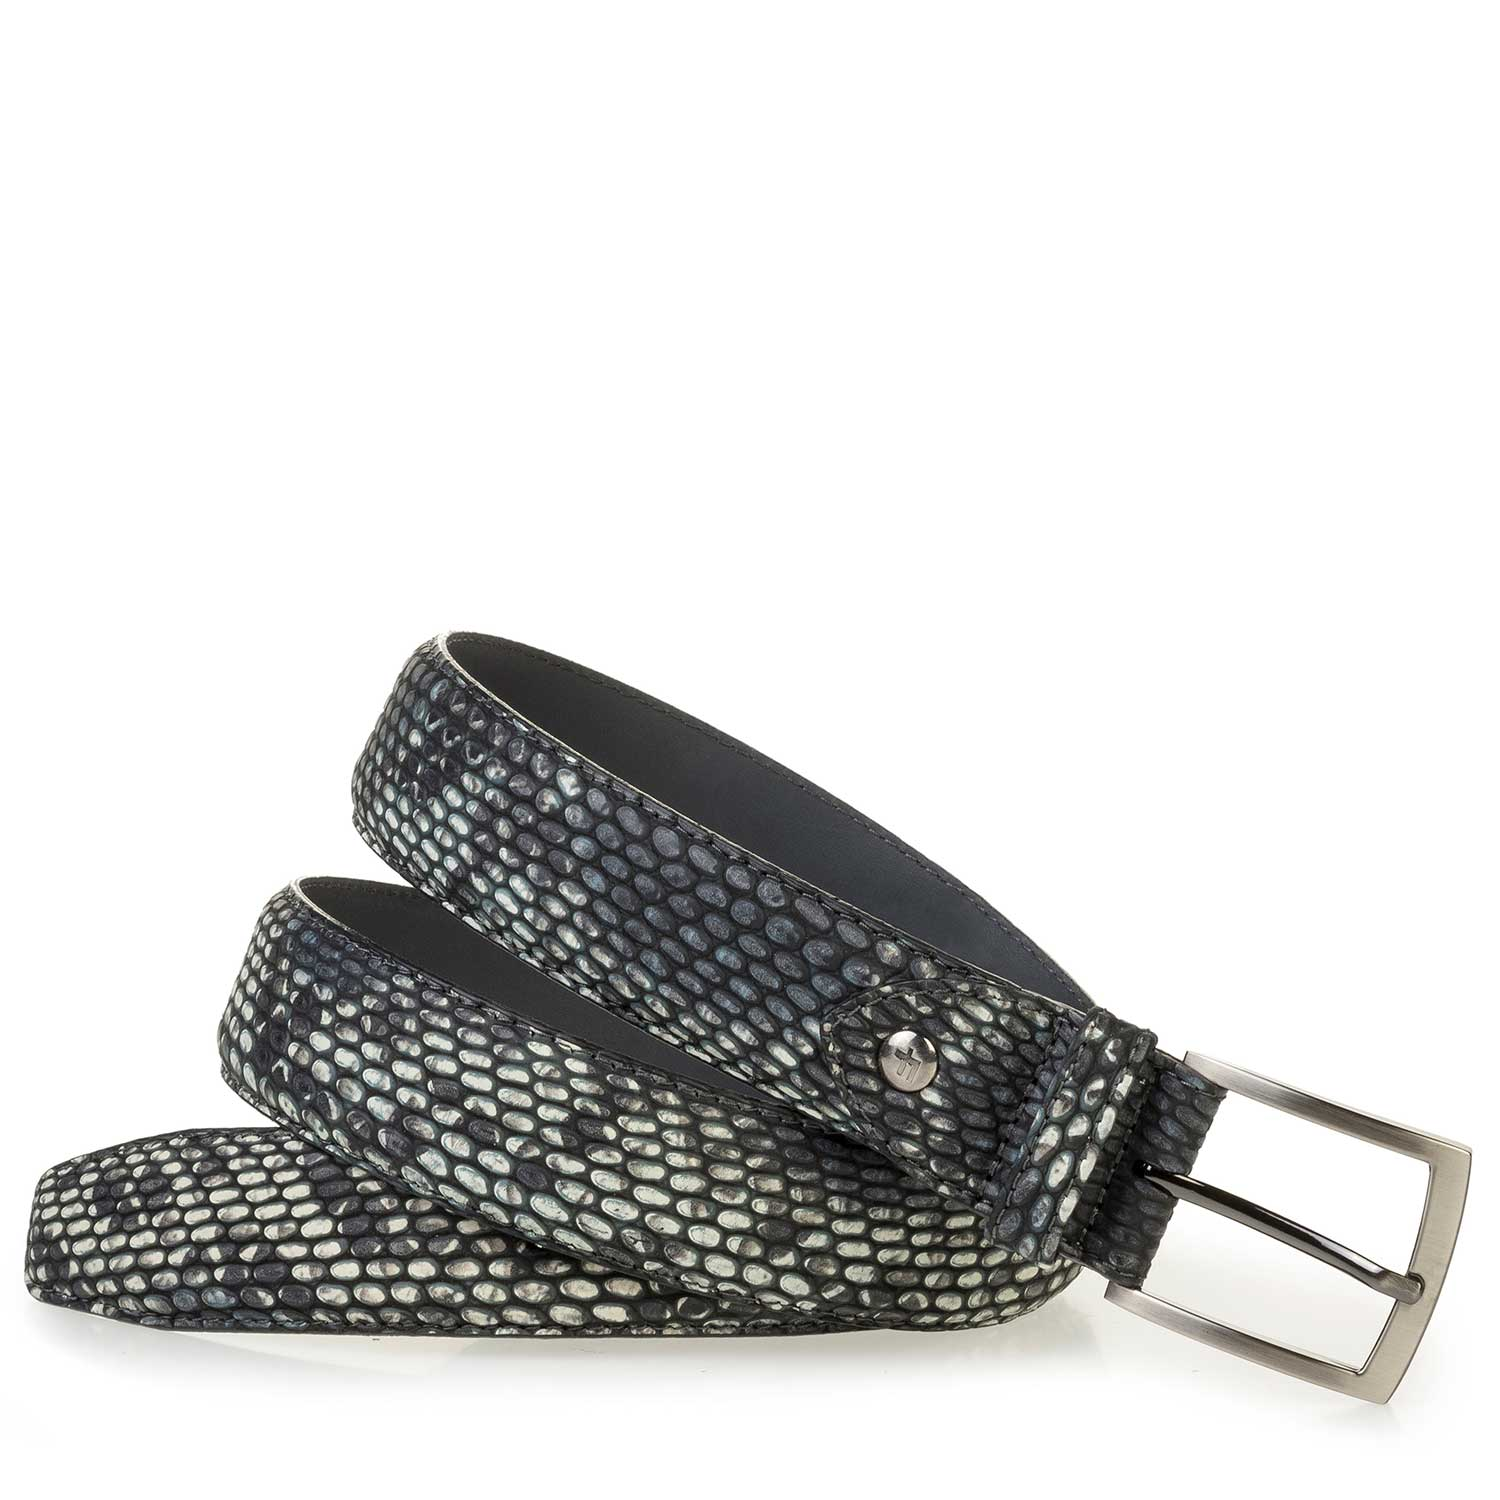 75200/55 - Gray calf leather belt with a snake print